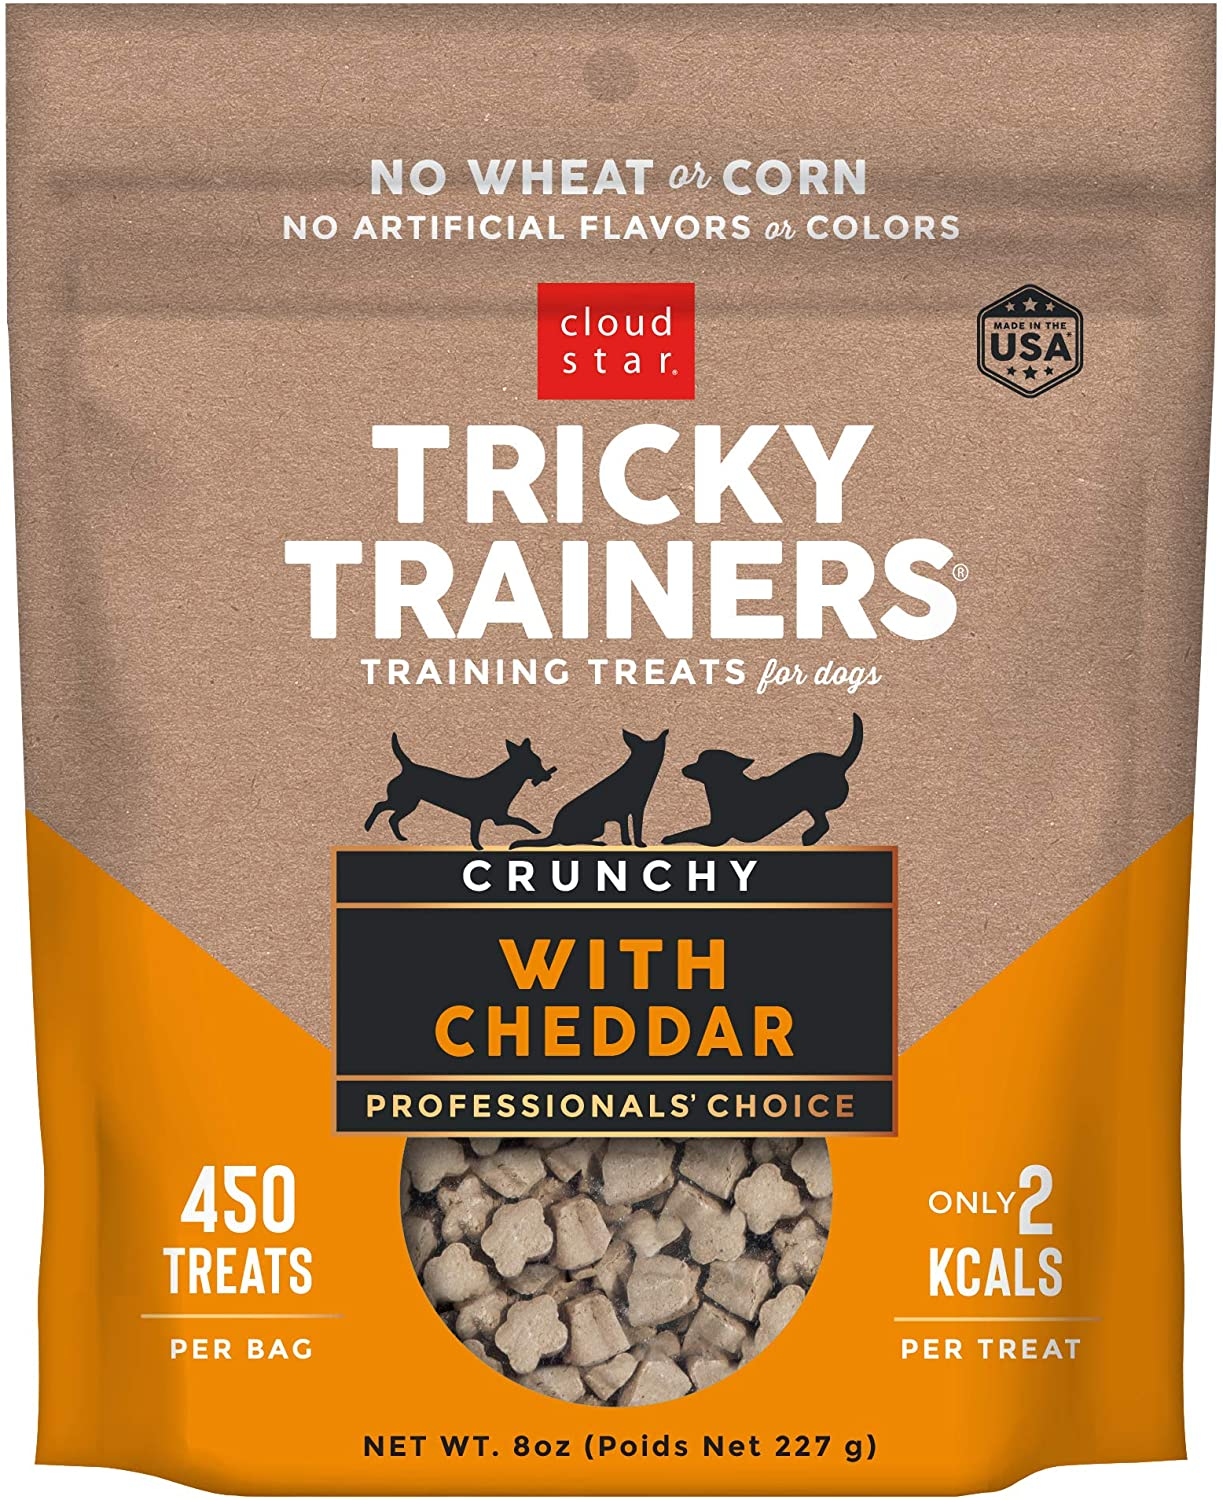 Cloud Star Tricky Trainers Crunchy, Low Calorie Training Dog Treat, Made in the USA, Wheat & Corn Free